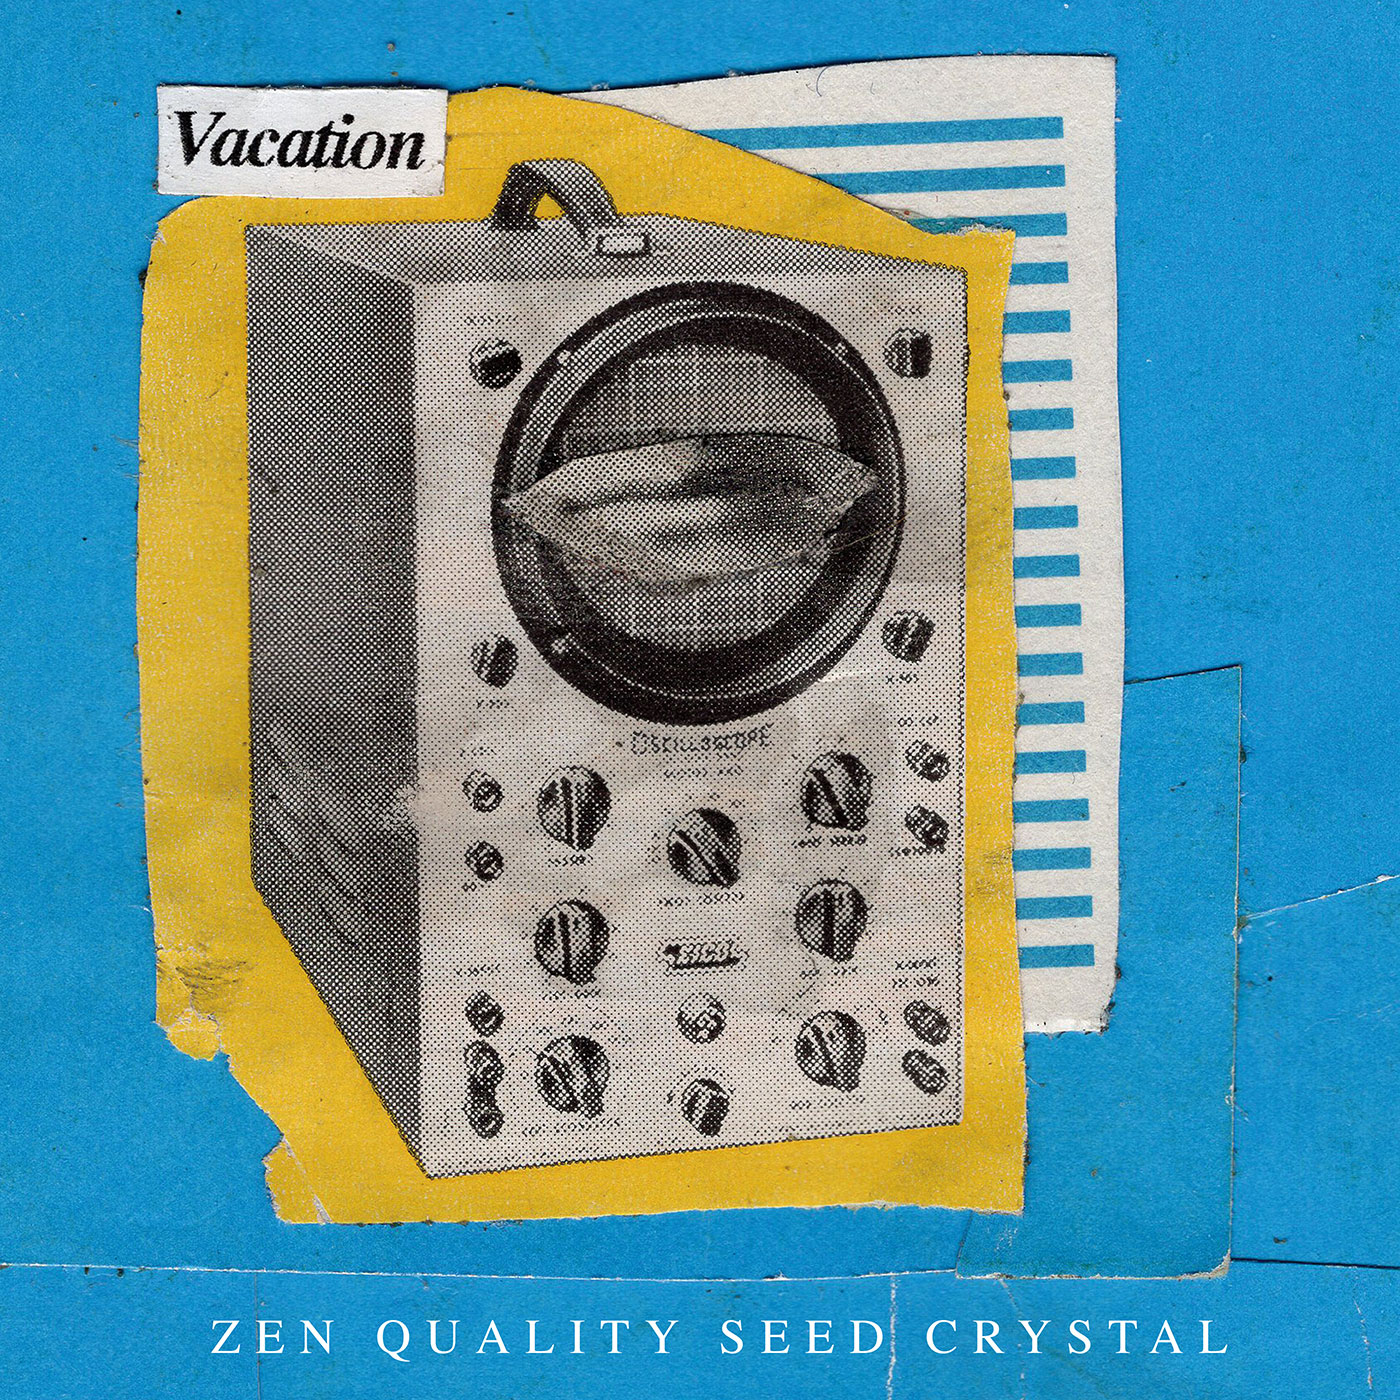 Vacation - Zen Quality Seed Crystal.jpg